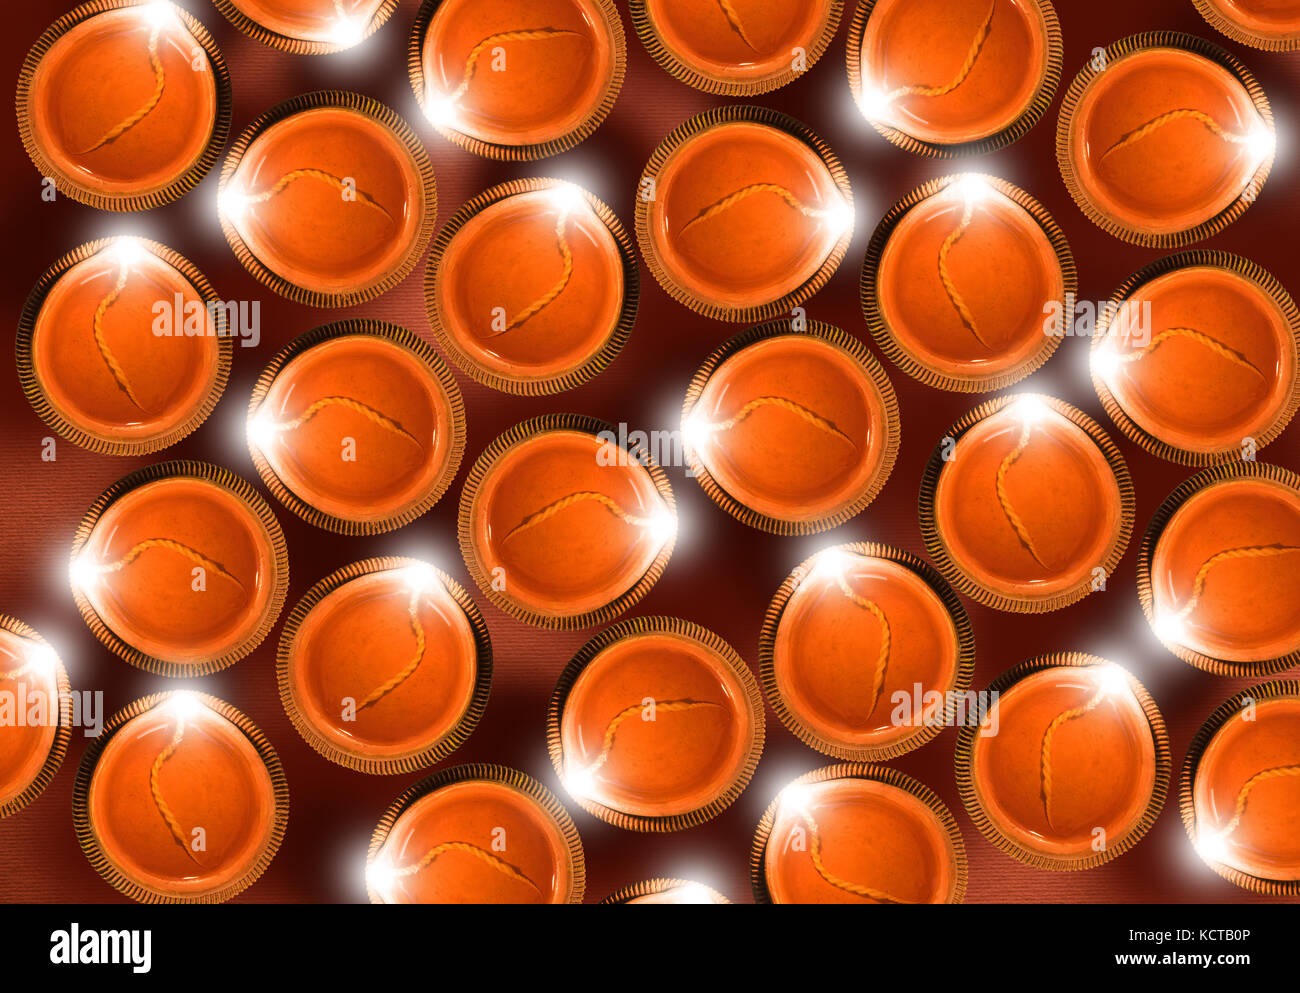 Stock photo of diwali greeting card showing top view of many illuminated diyas or oil lamps or panti forming shape Stock Photo